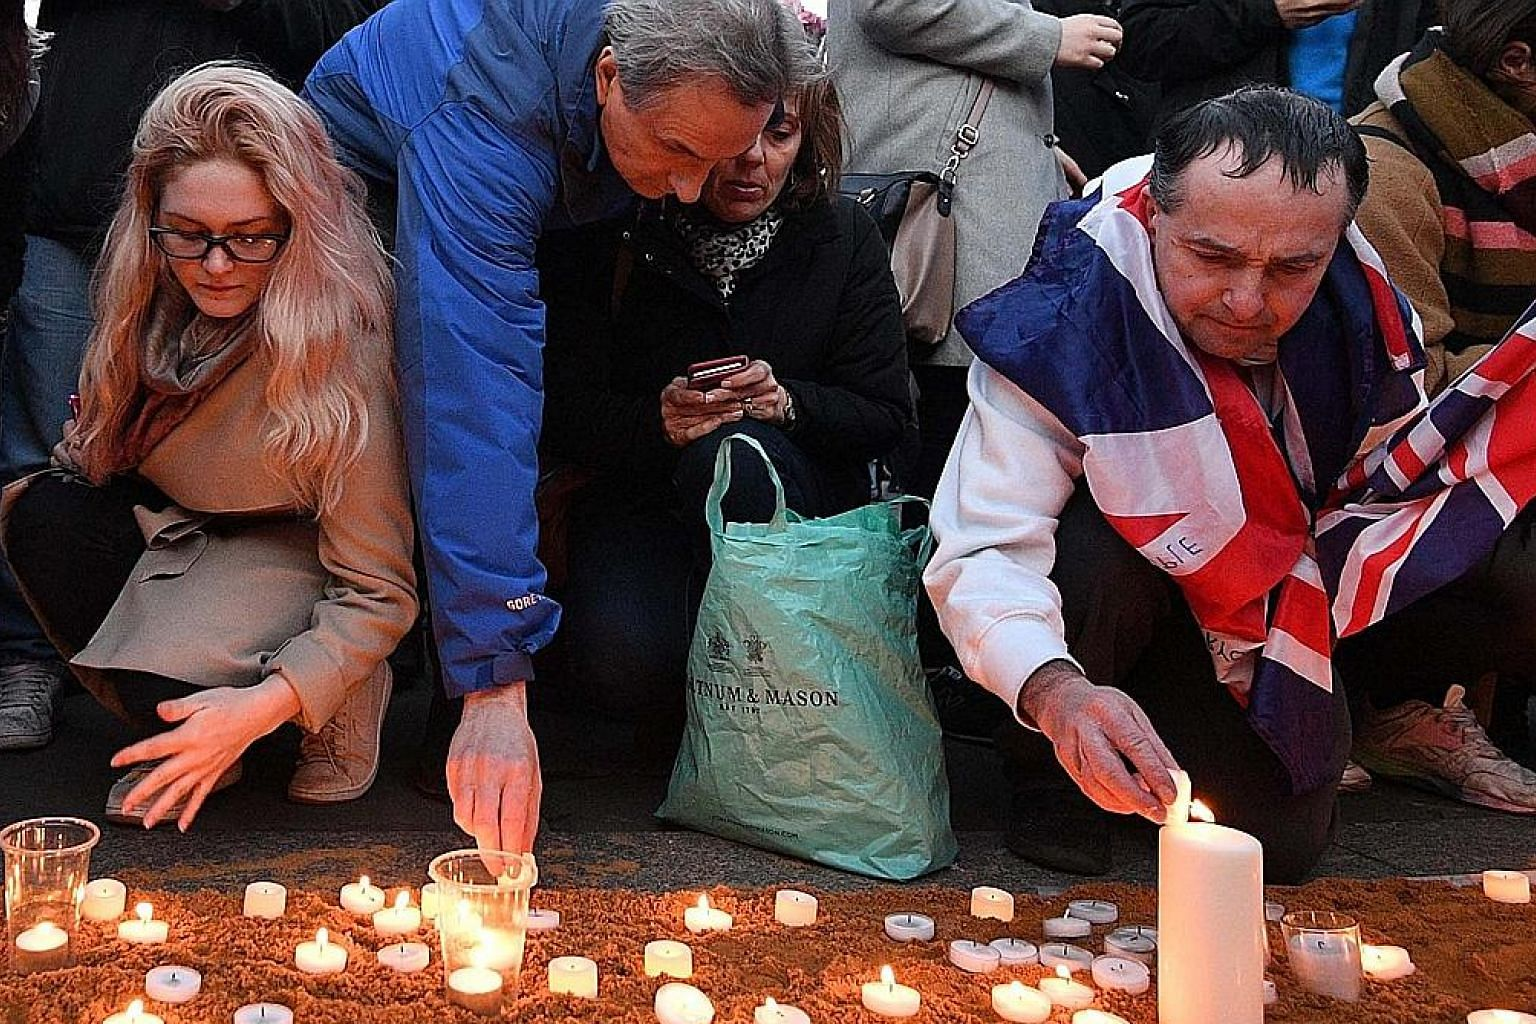 Thousands of people gathered at a candle-light vigil in London's Trafalgar Square on Thursday to pay their respects to the victims of Wednesday's terror attack. Security was tight at the event, which was led by London Mayor Sadiq Khan.